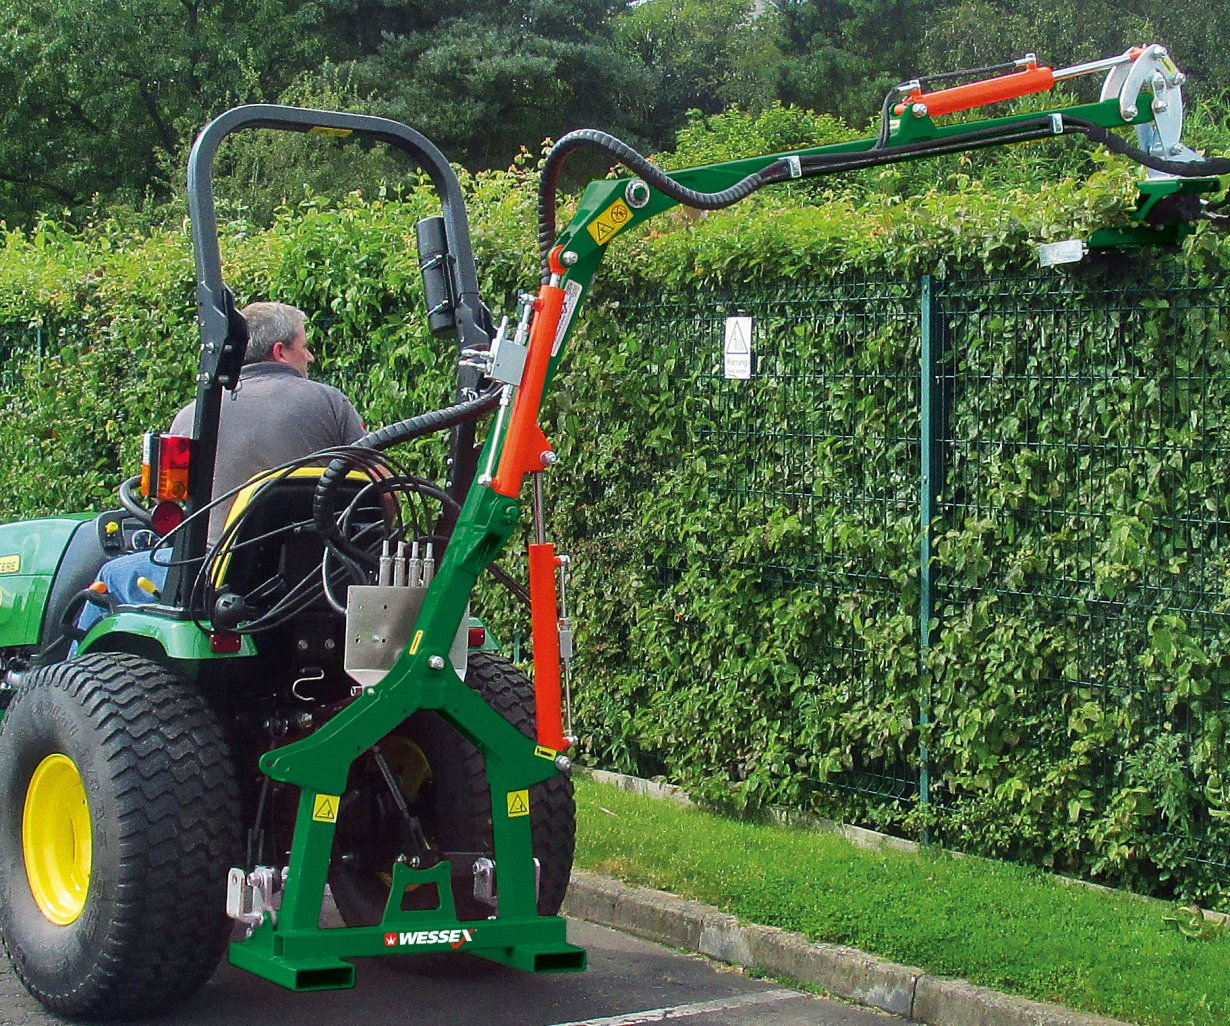 Wessex CHT Hedge Cutters